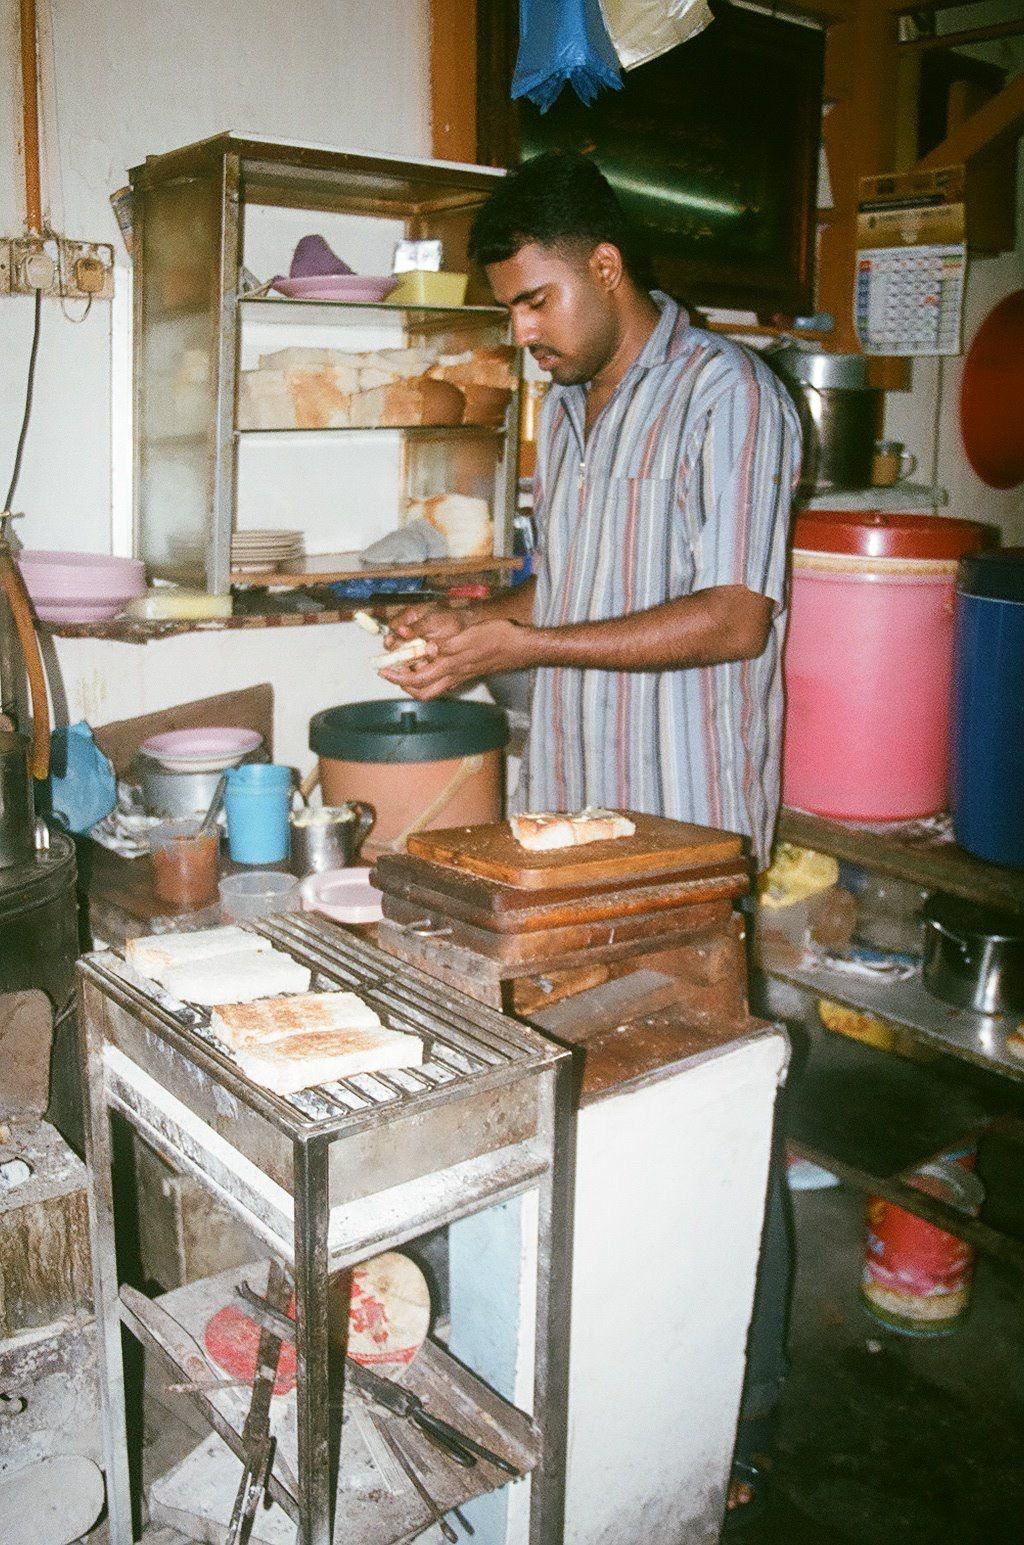 A cook at a kopitiam run by Eusope's great uncle in Penang prepares charcoal kaya toast